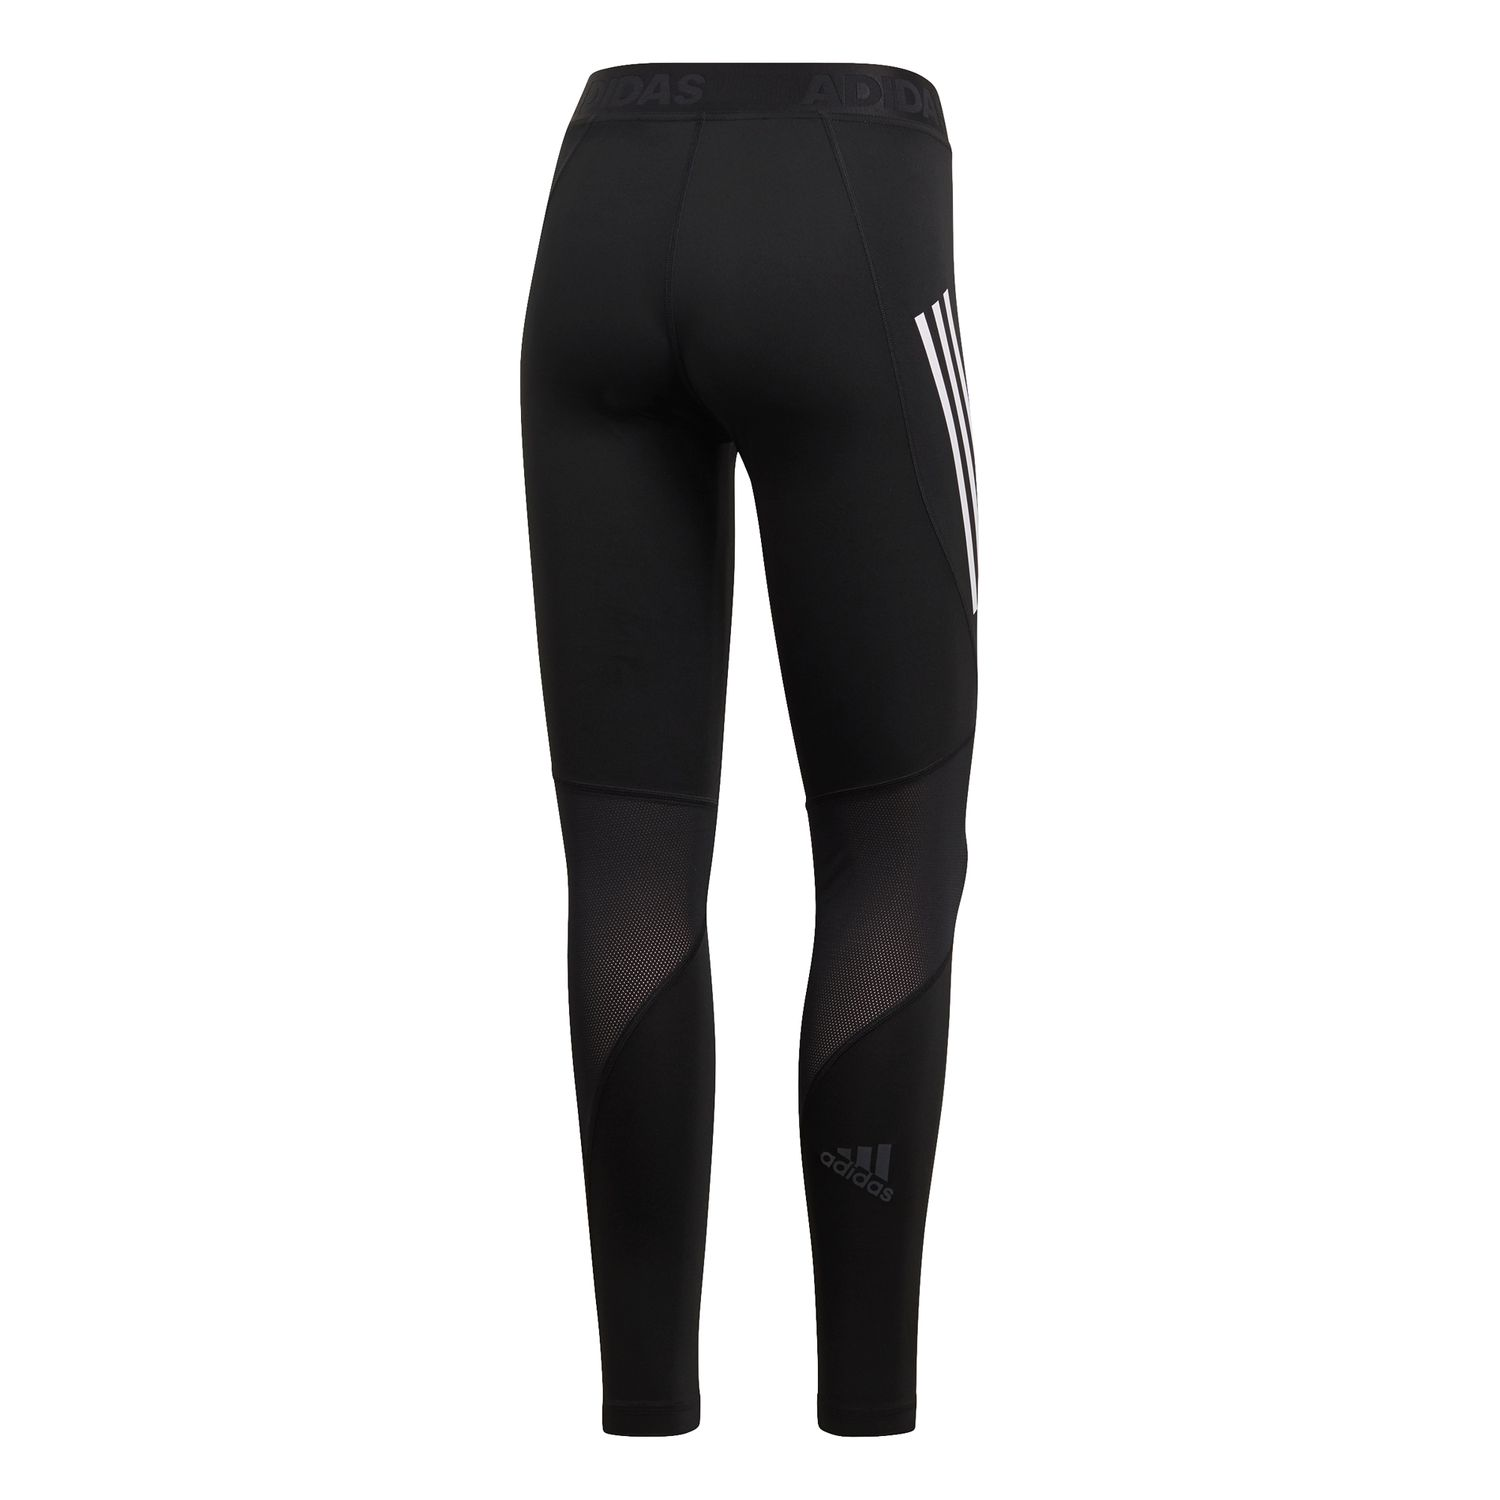 adidas Alphaskin Sport 3-Streifen lange Tight Damen Leggings – Bild 2